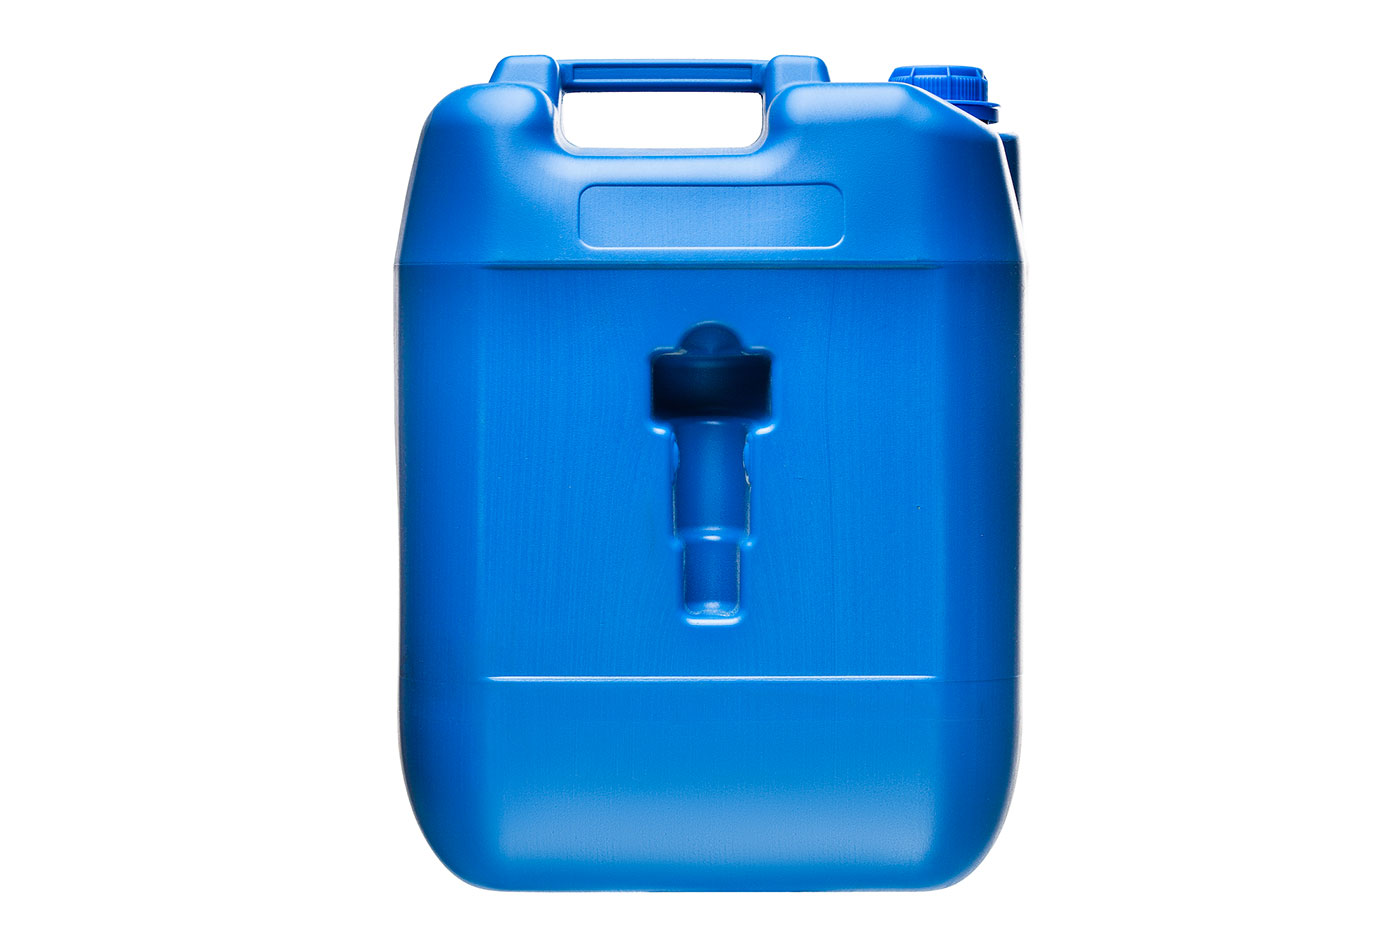 malmarks_international_plastic_container_blue